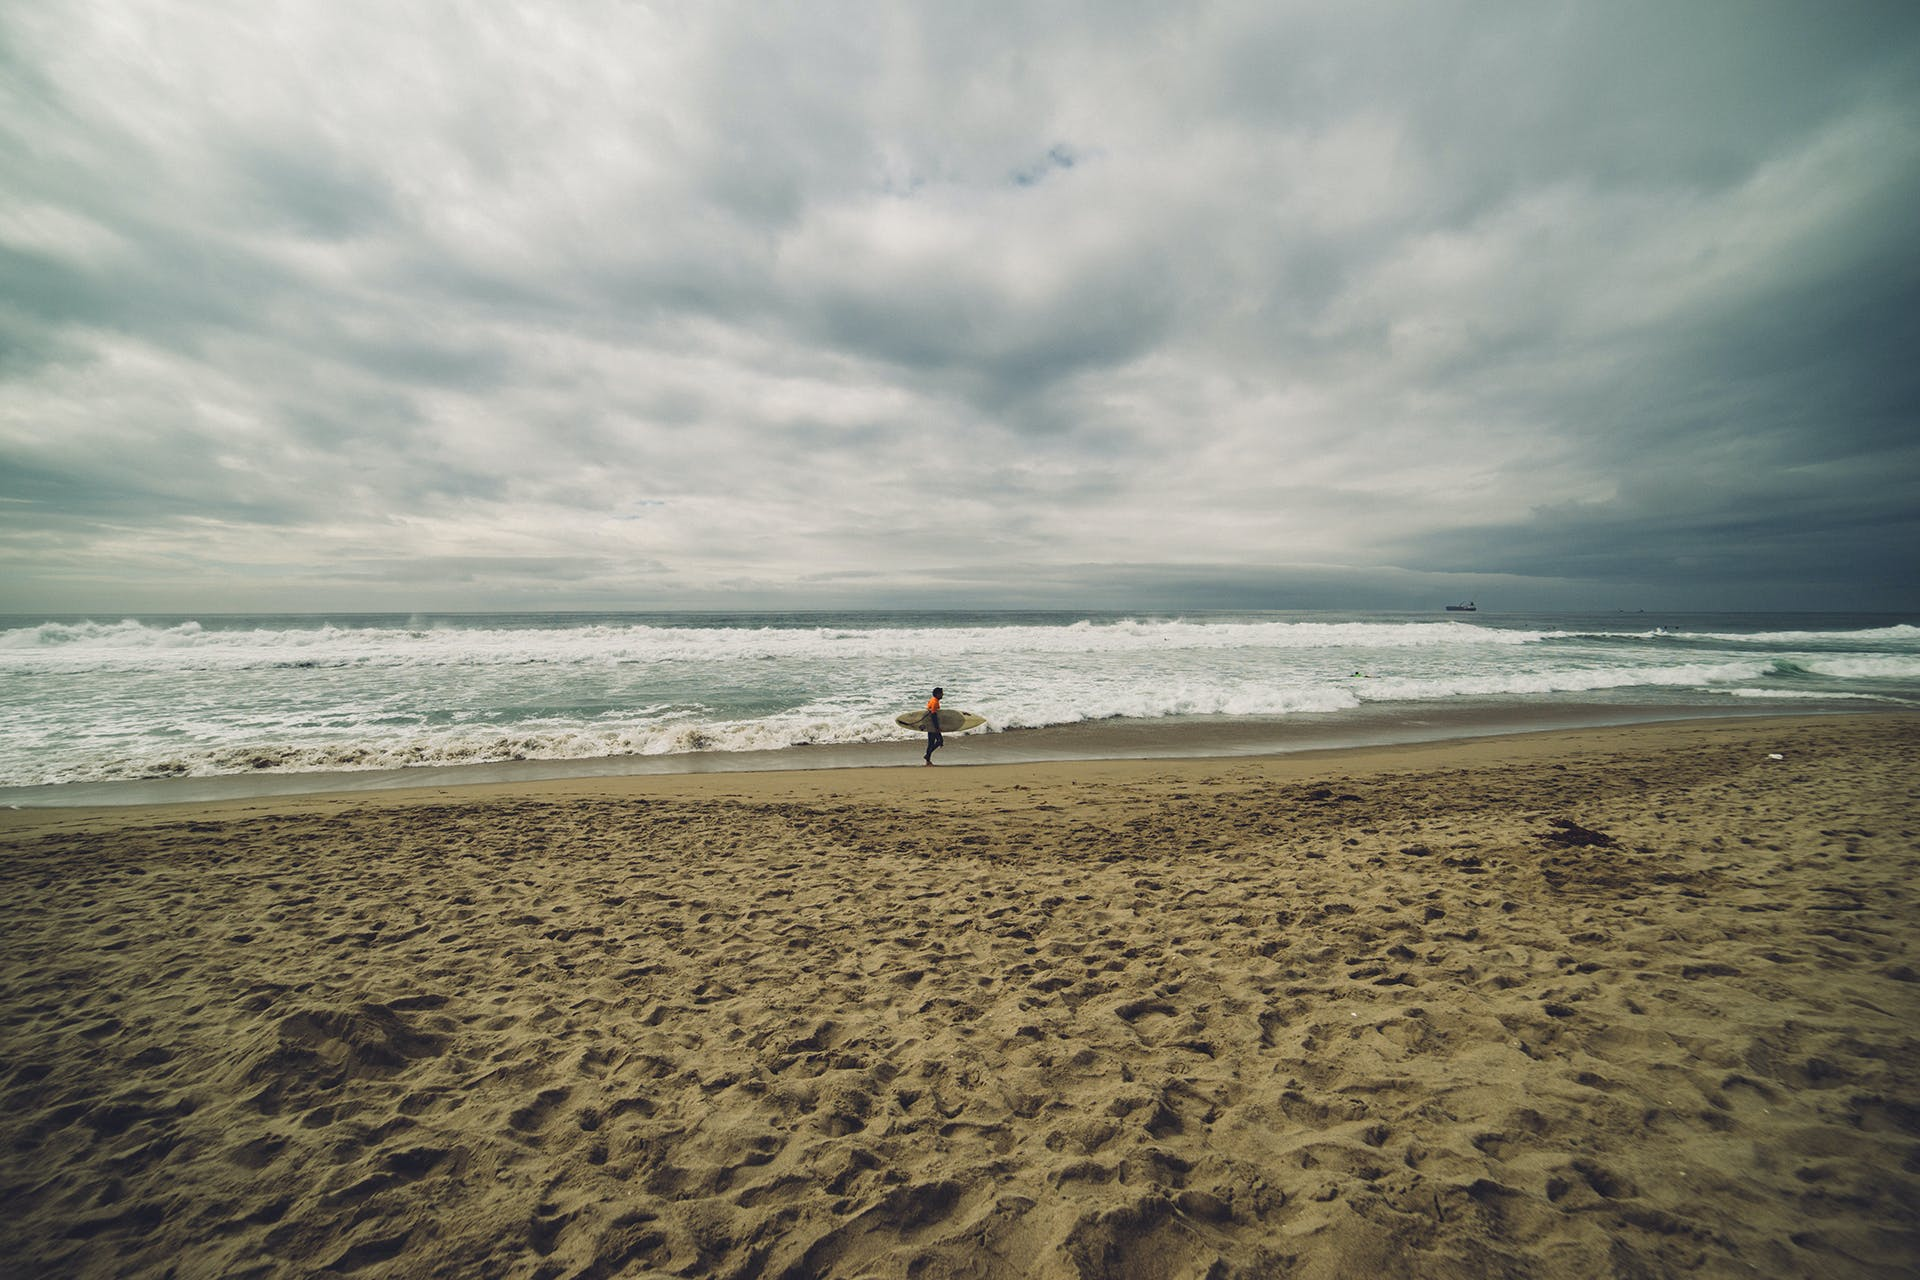 Free stock photo of sea, beach, sand, surfer